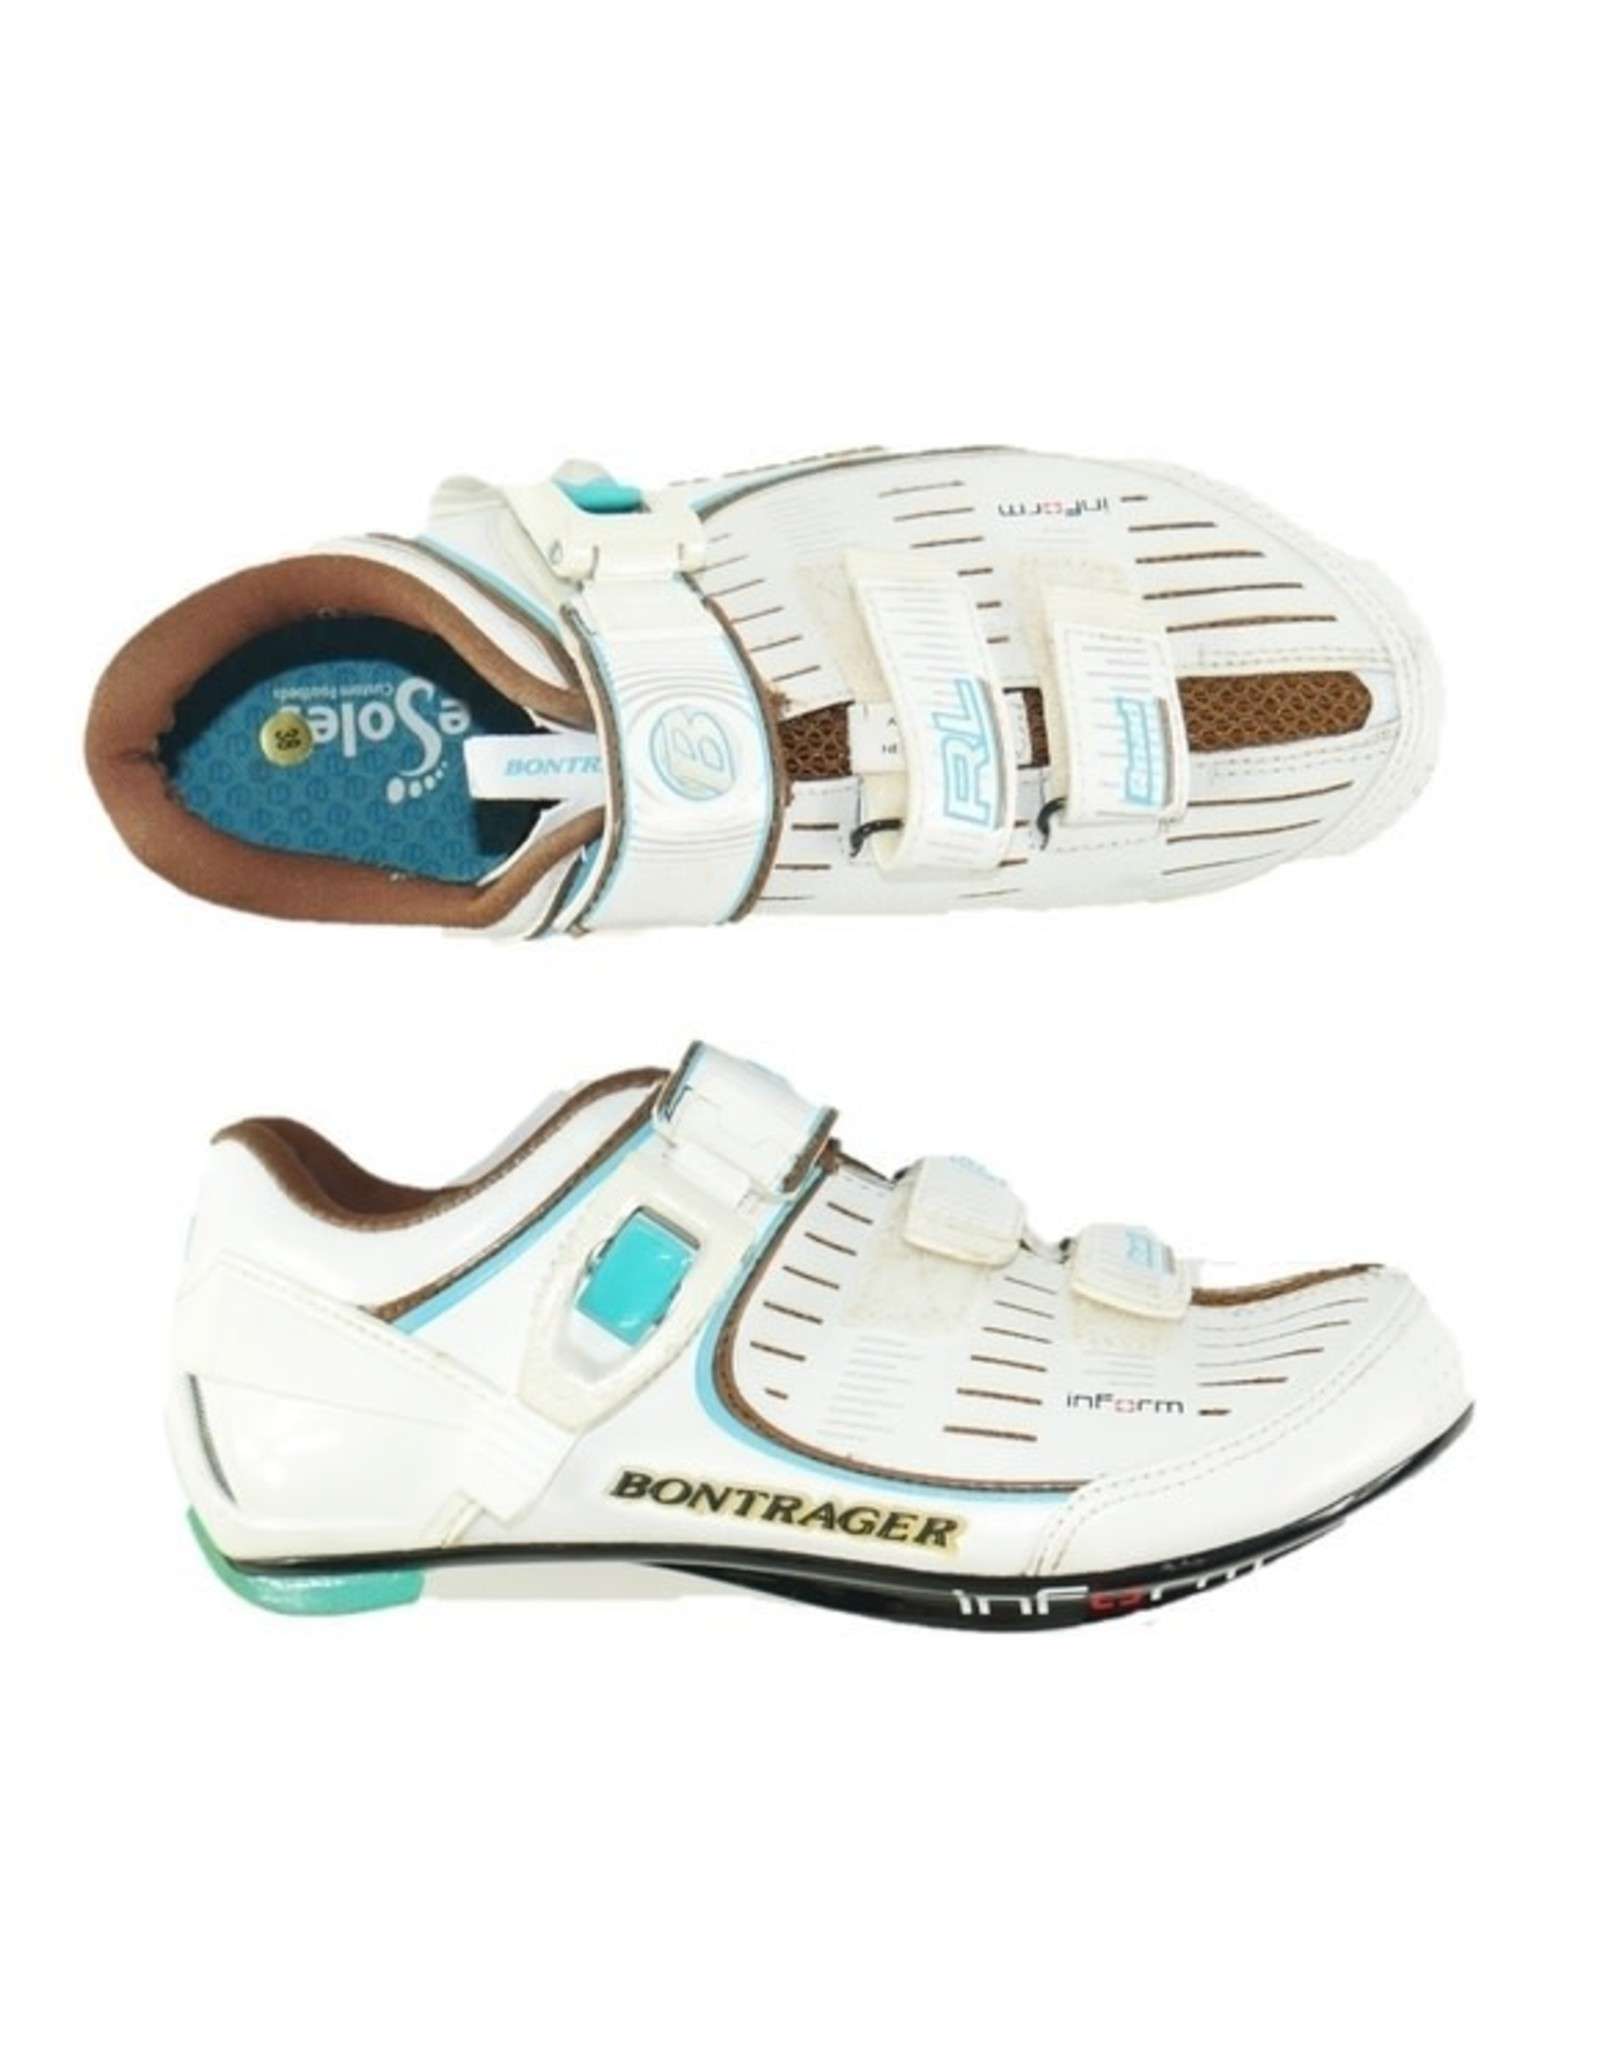 BONTRAGER RL Road Cycling Shoes Womens (New Old Stock) White 36